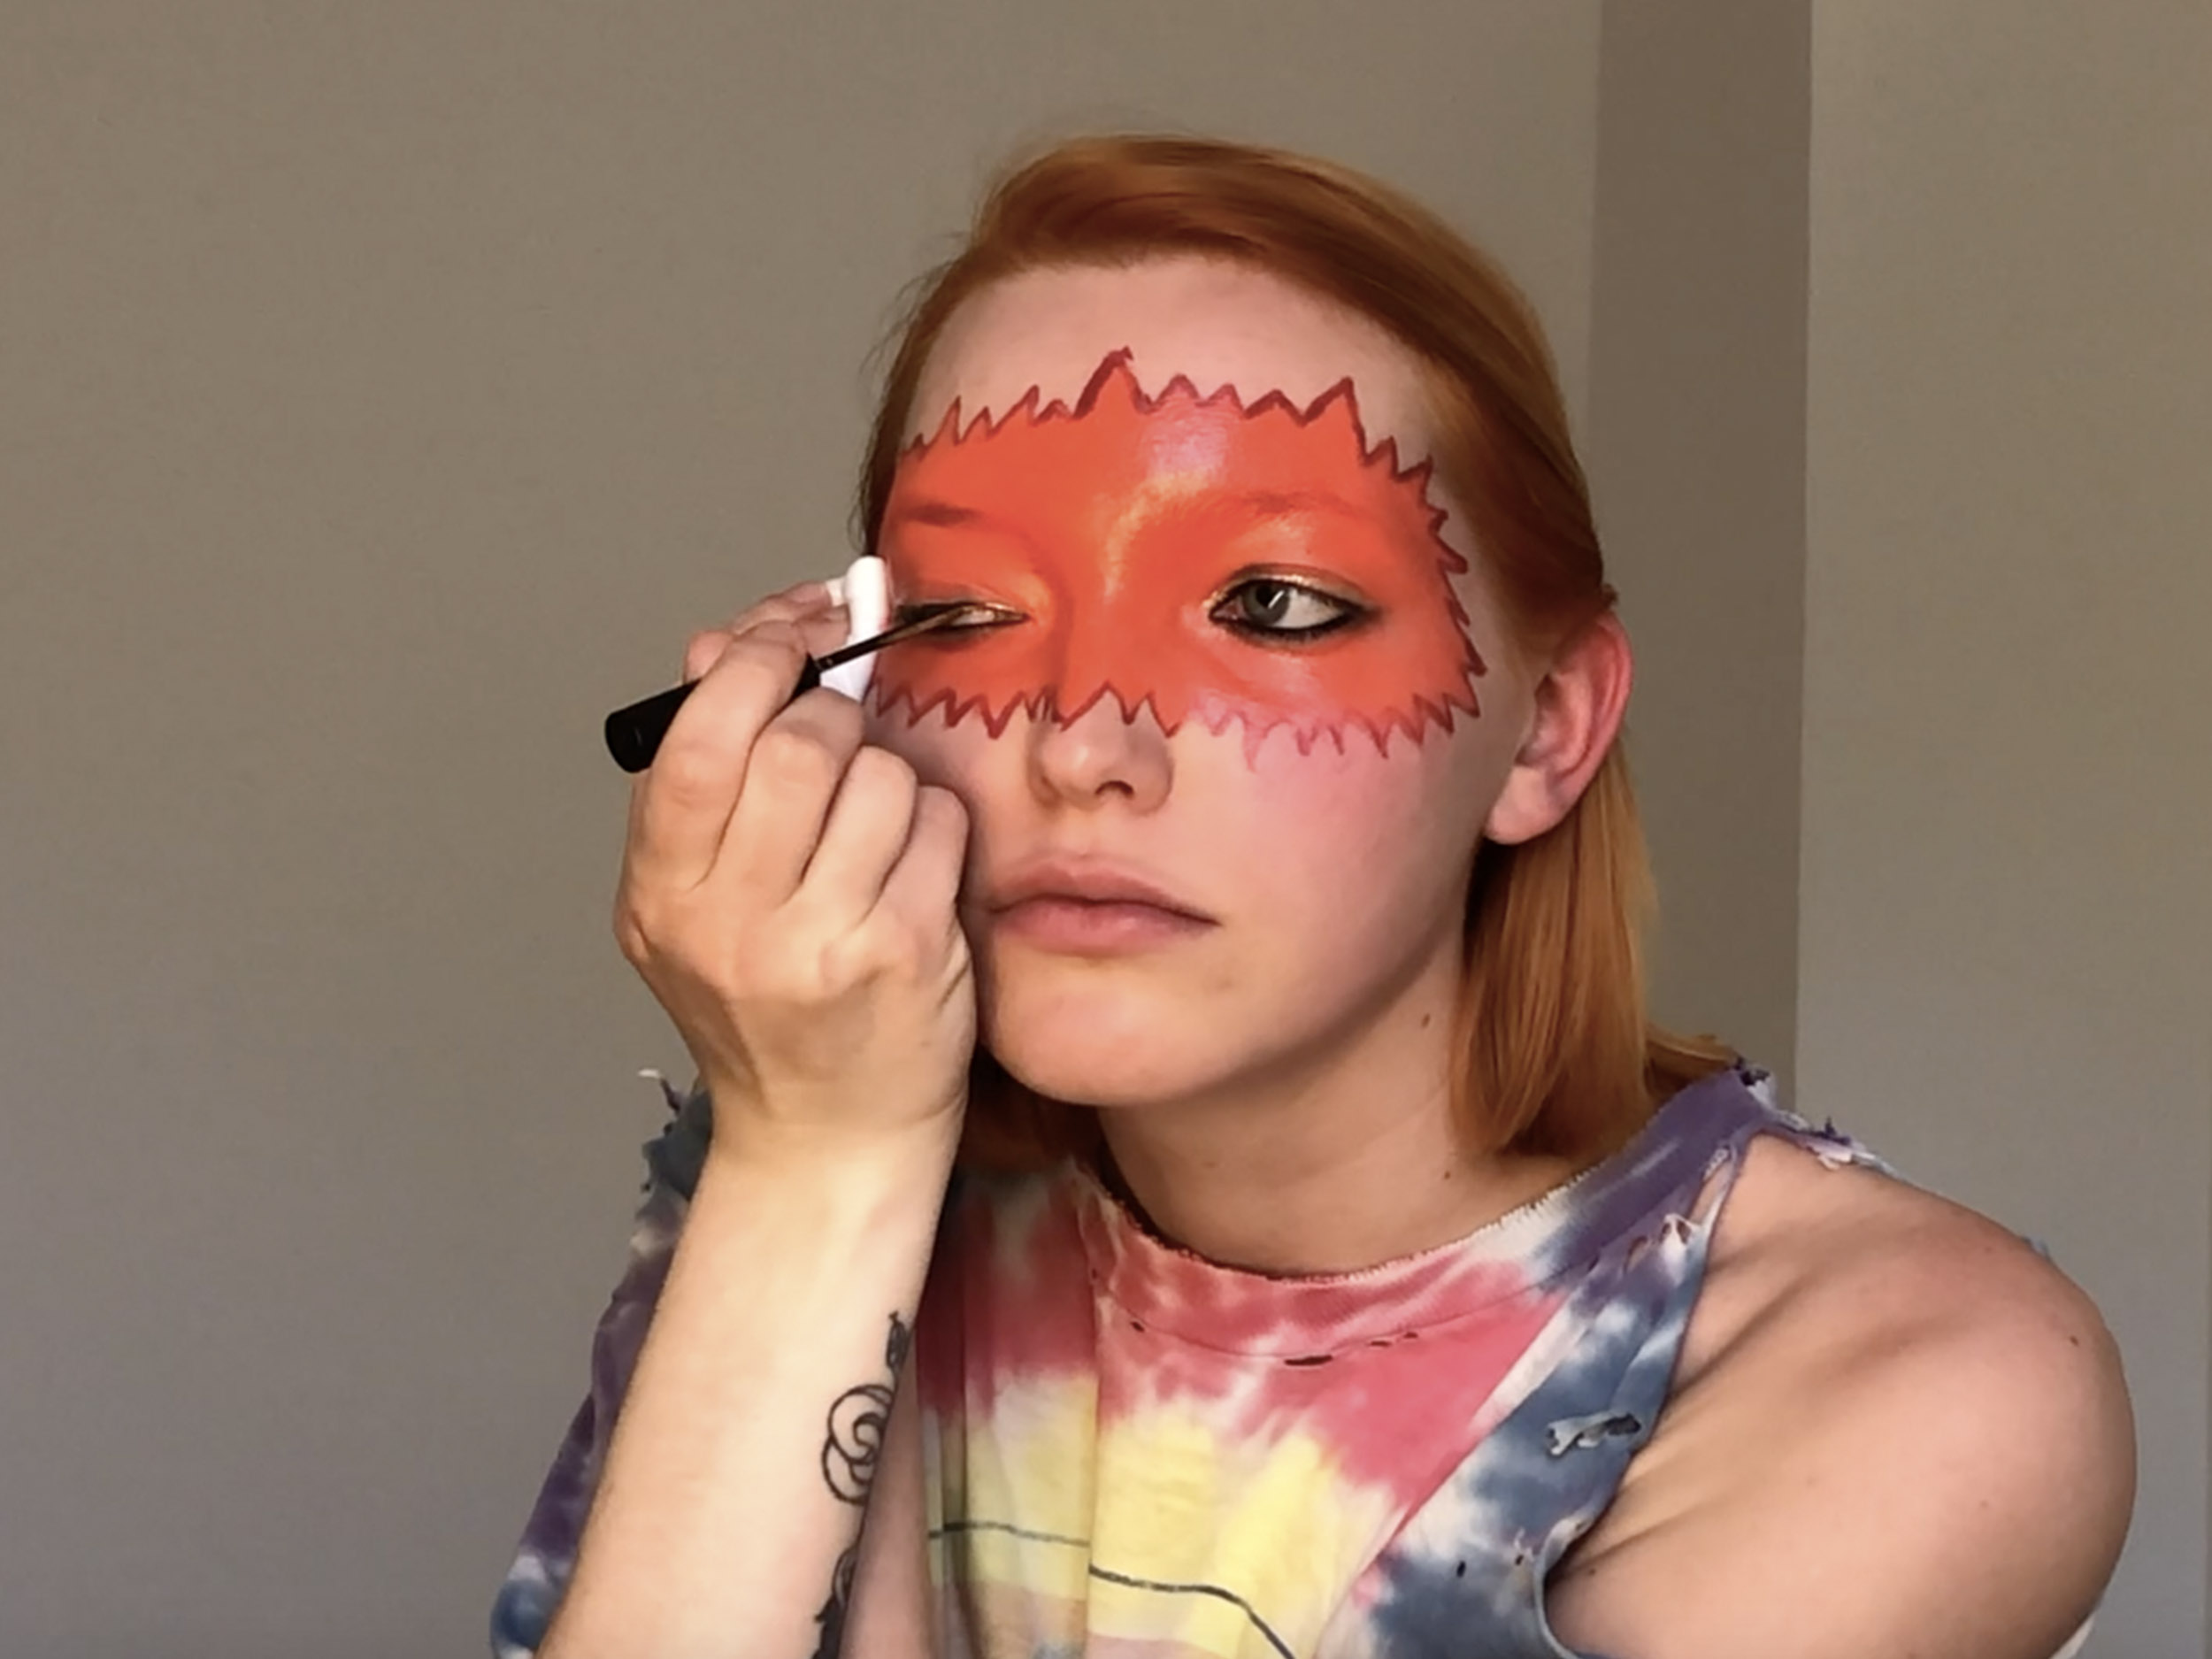 Ajsa Movic's fiery Toyah Willcox look is perfect for Leo season